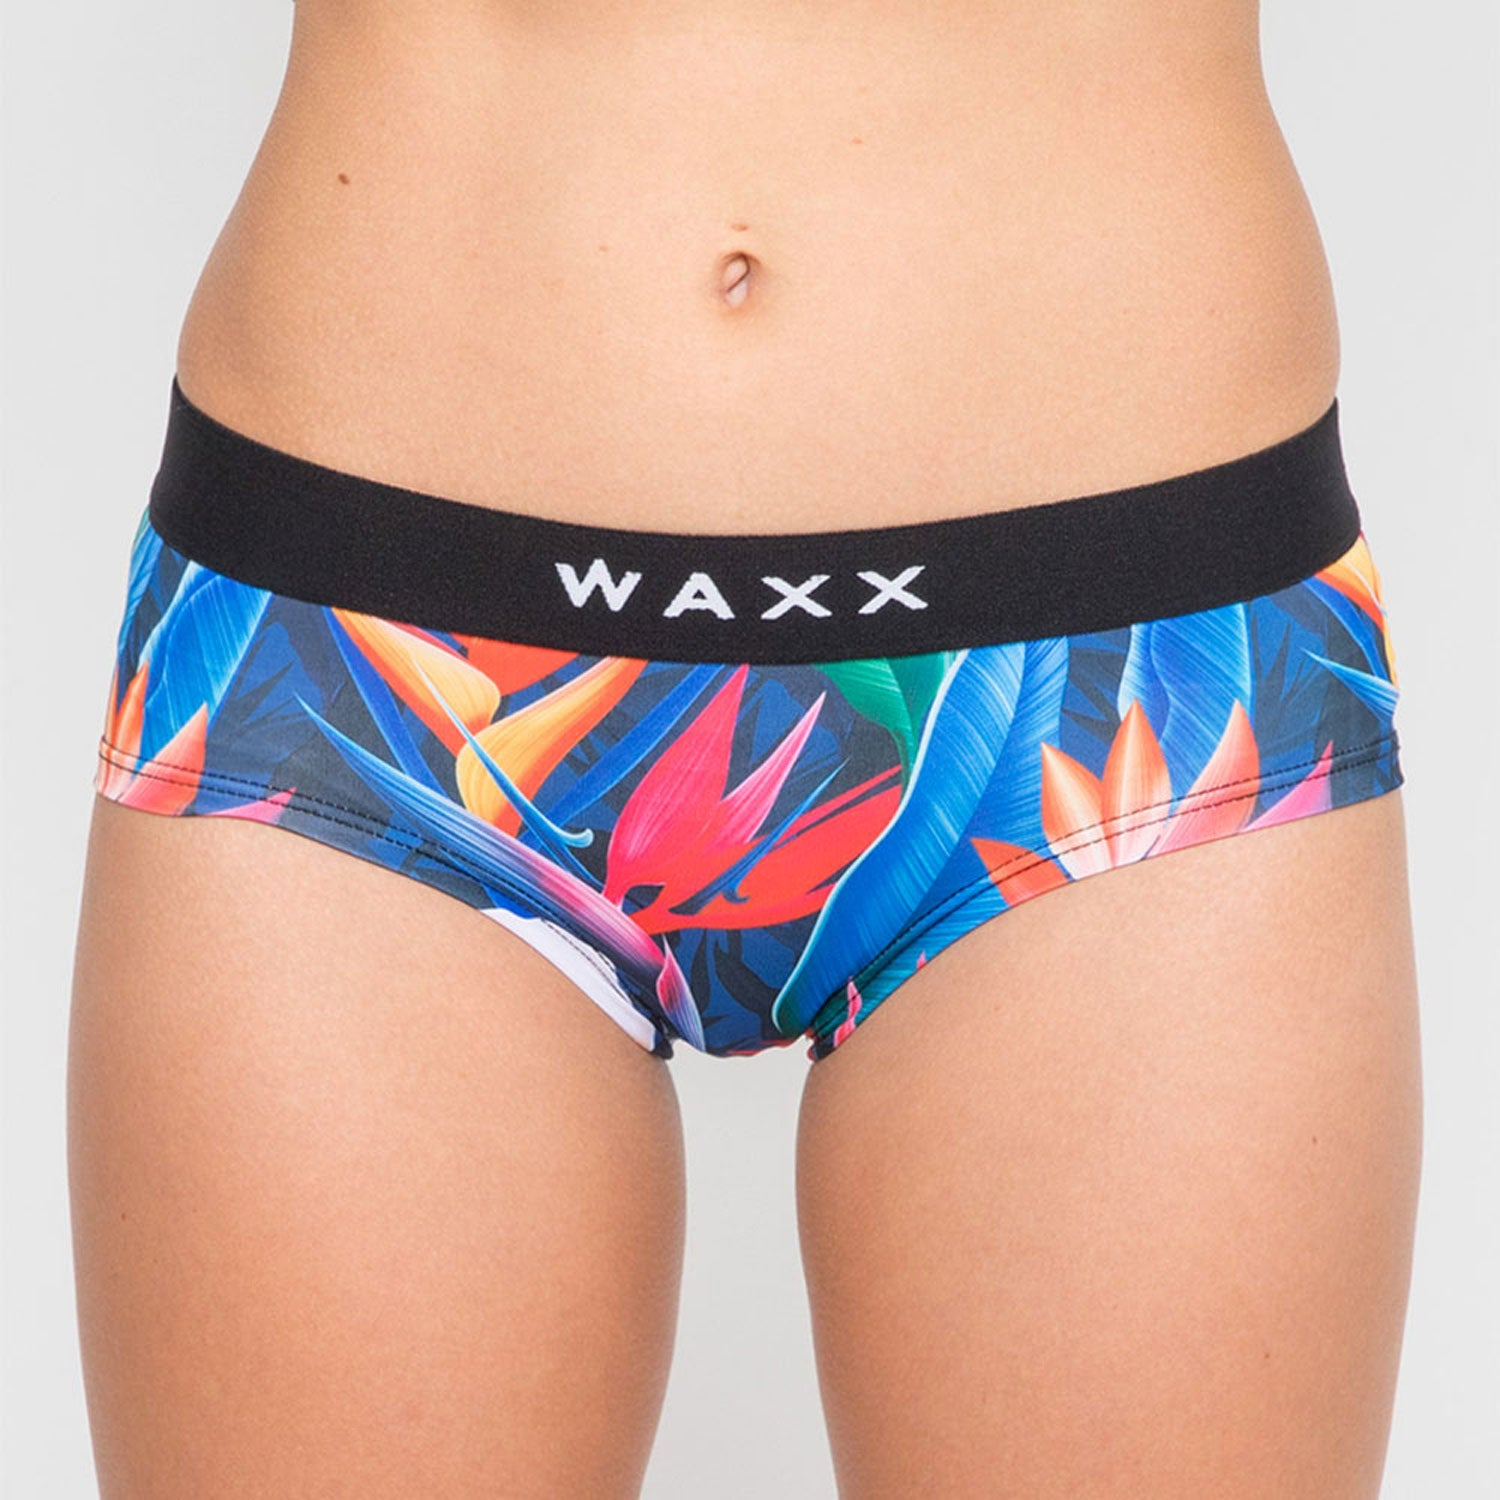 Waxx Women's Boy Short Amazone